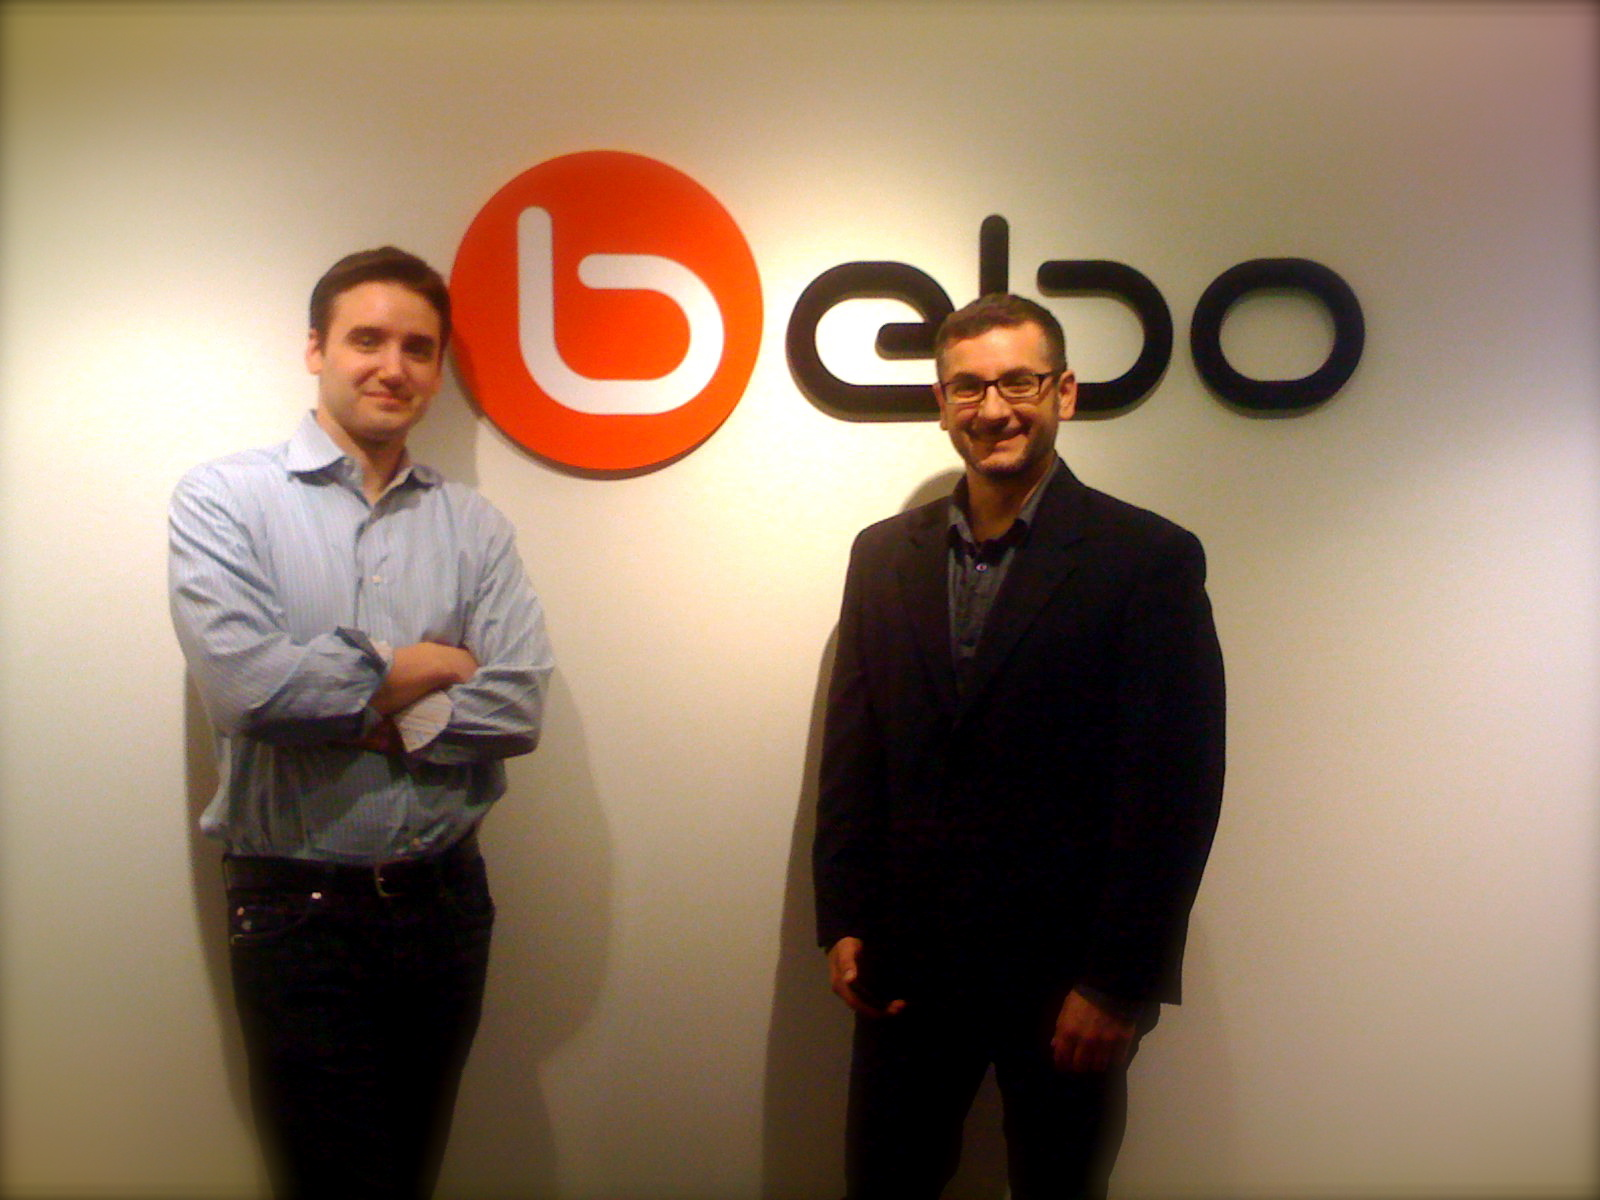 Frank Gruber & Greg Cangialosi at Bebo in San Francisco